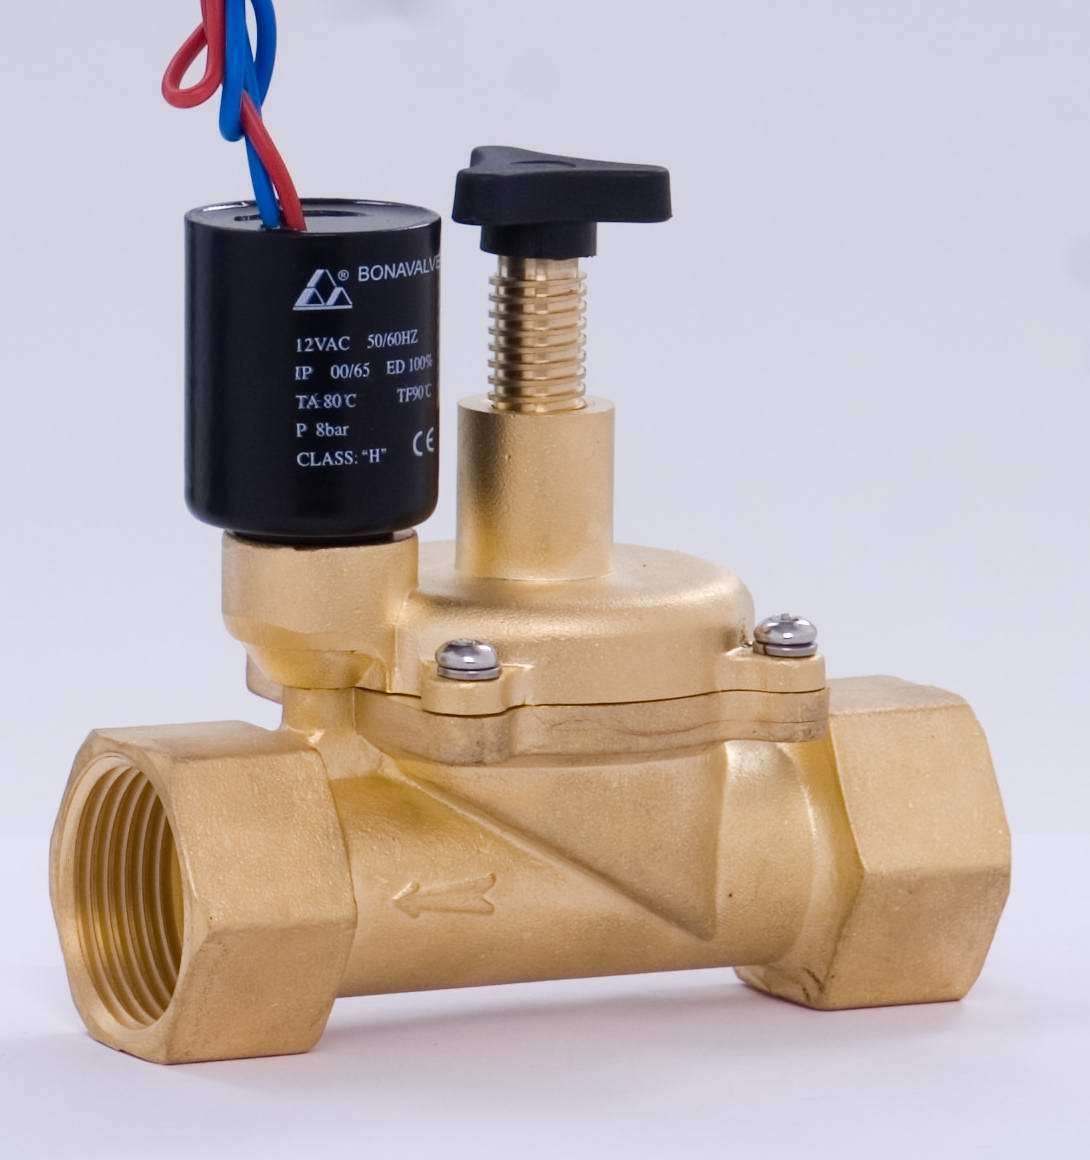 How to test a sprinkler solenoid – Security sistems